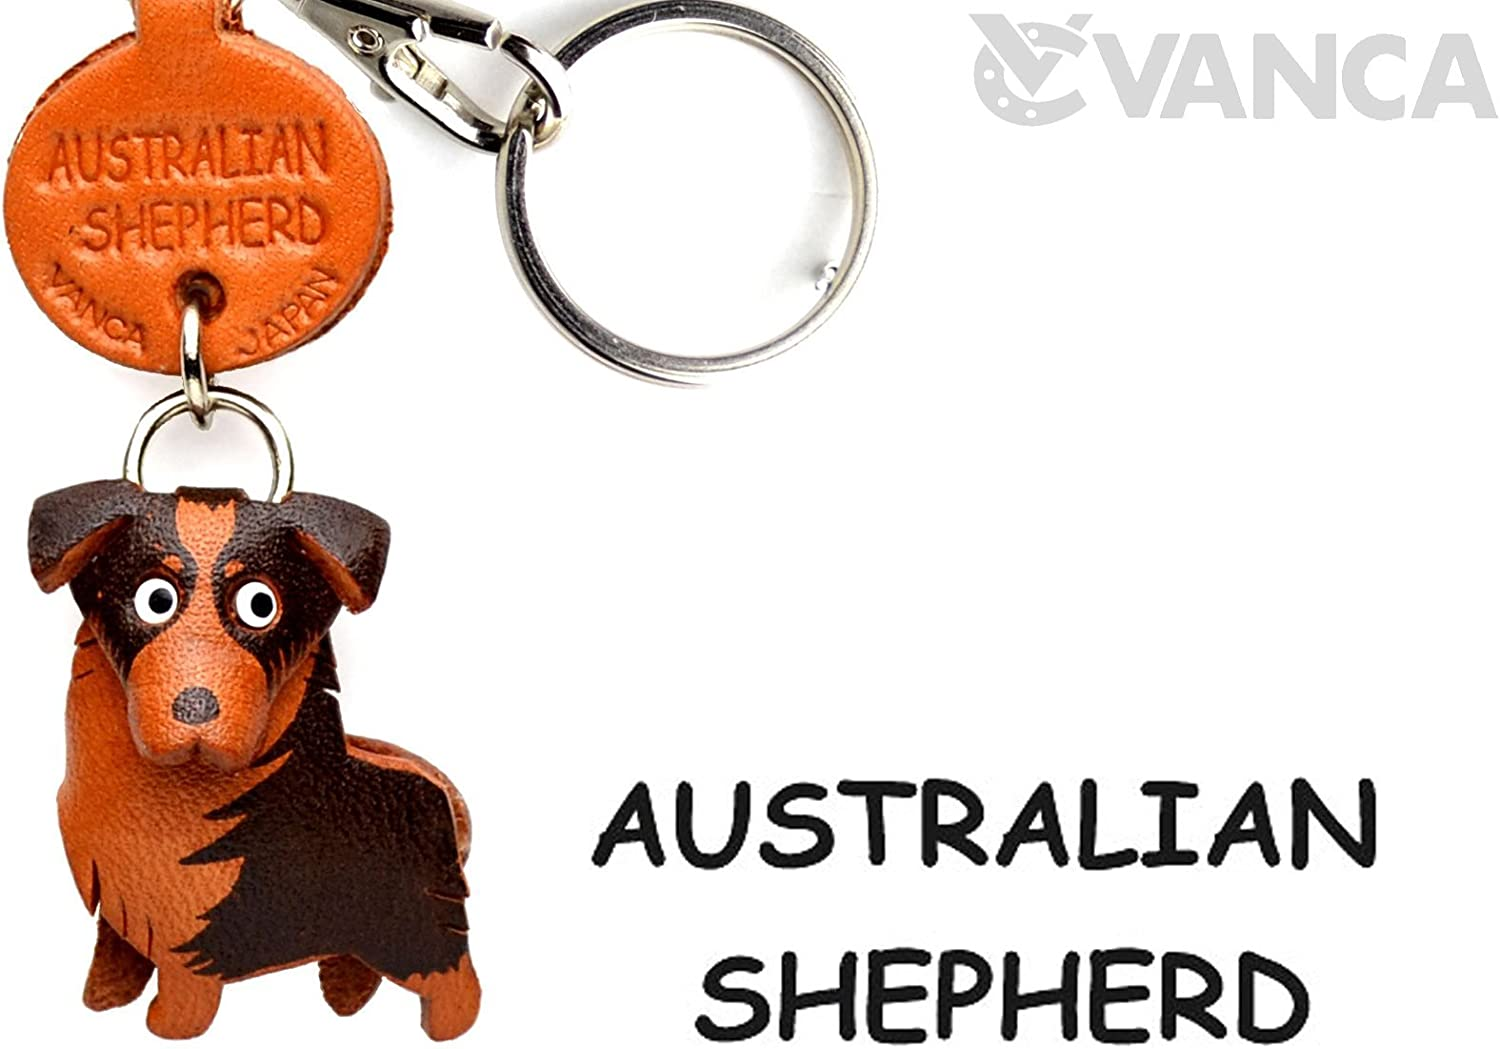 Australian Shepherd Leather Dog Small Keychain VANCA CRAFT-Collectible keyring Made in Japan